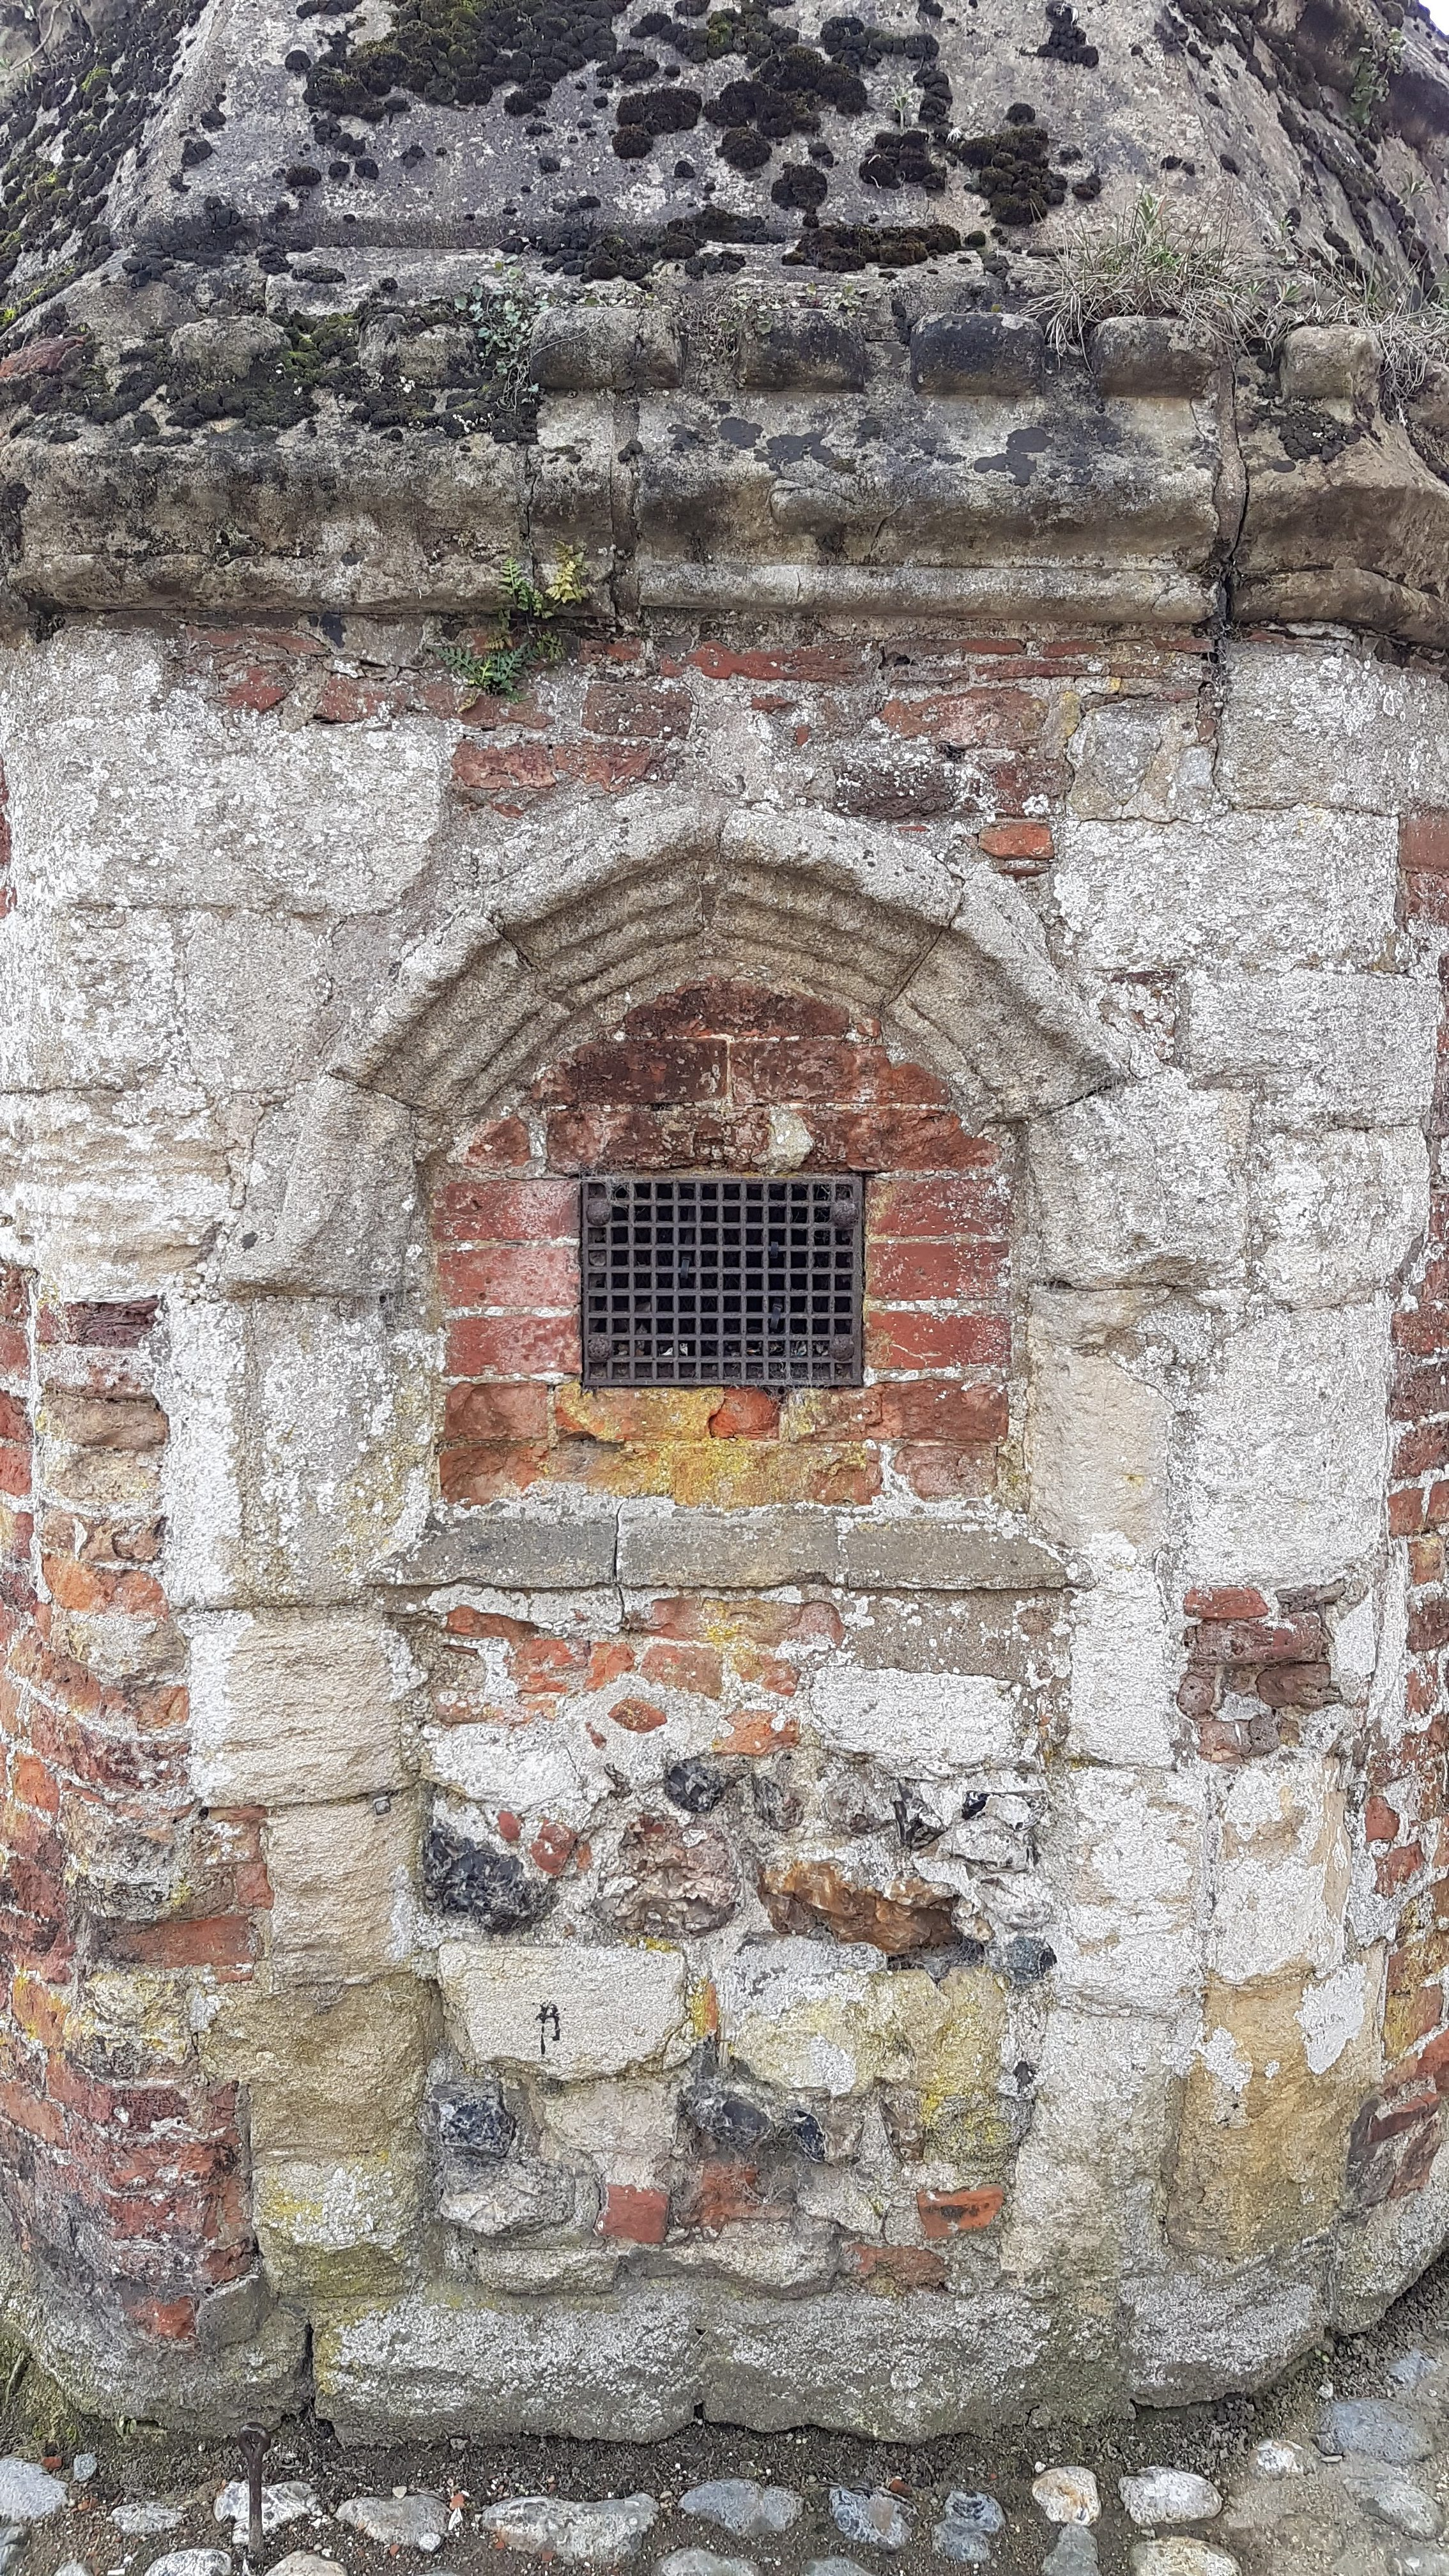 What looks like a small window, or at least an opening for ventilation, covered with an iron grille